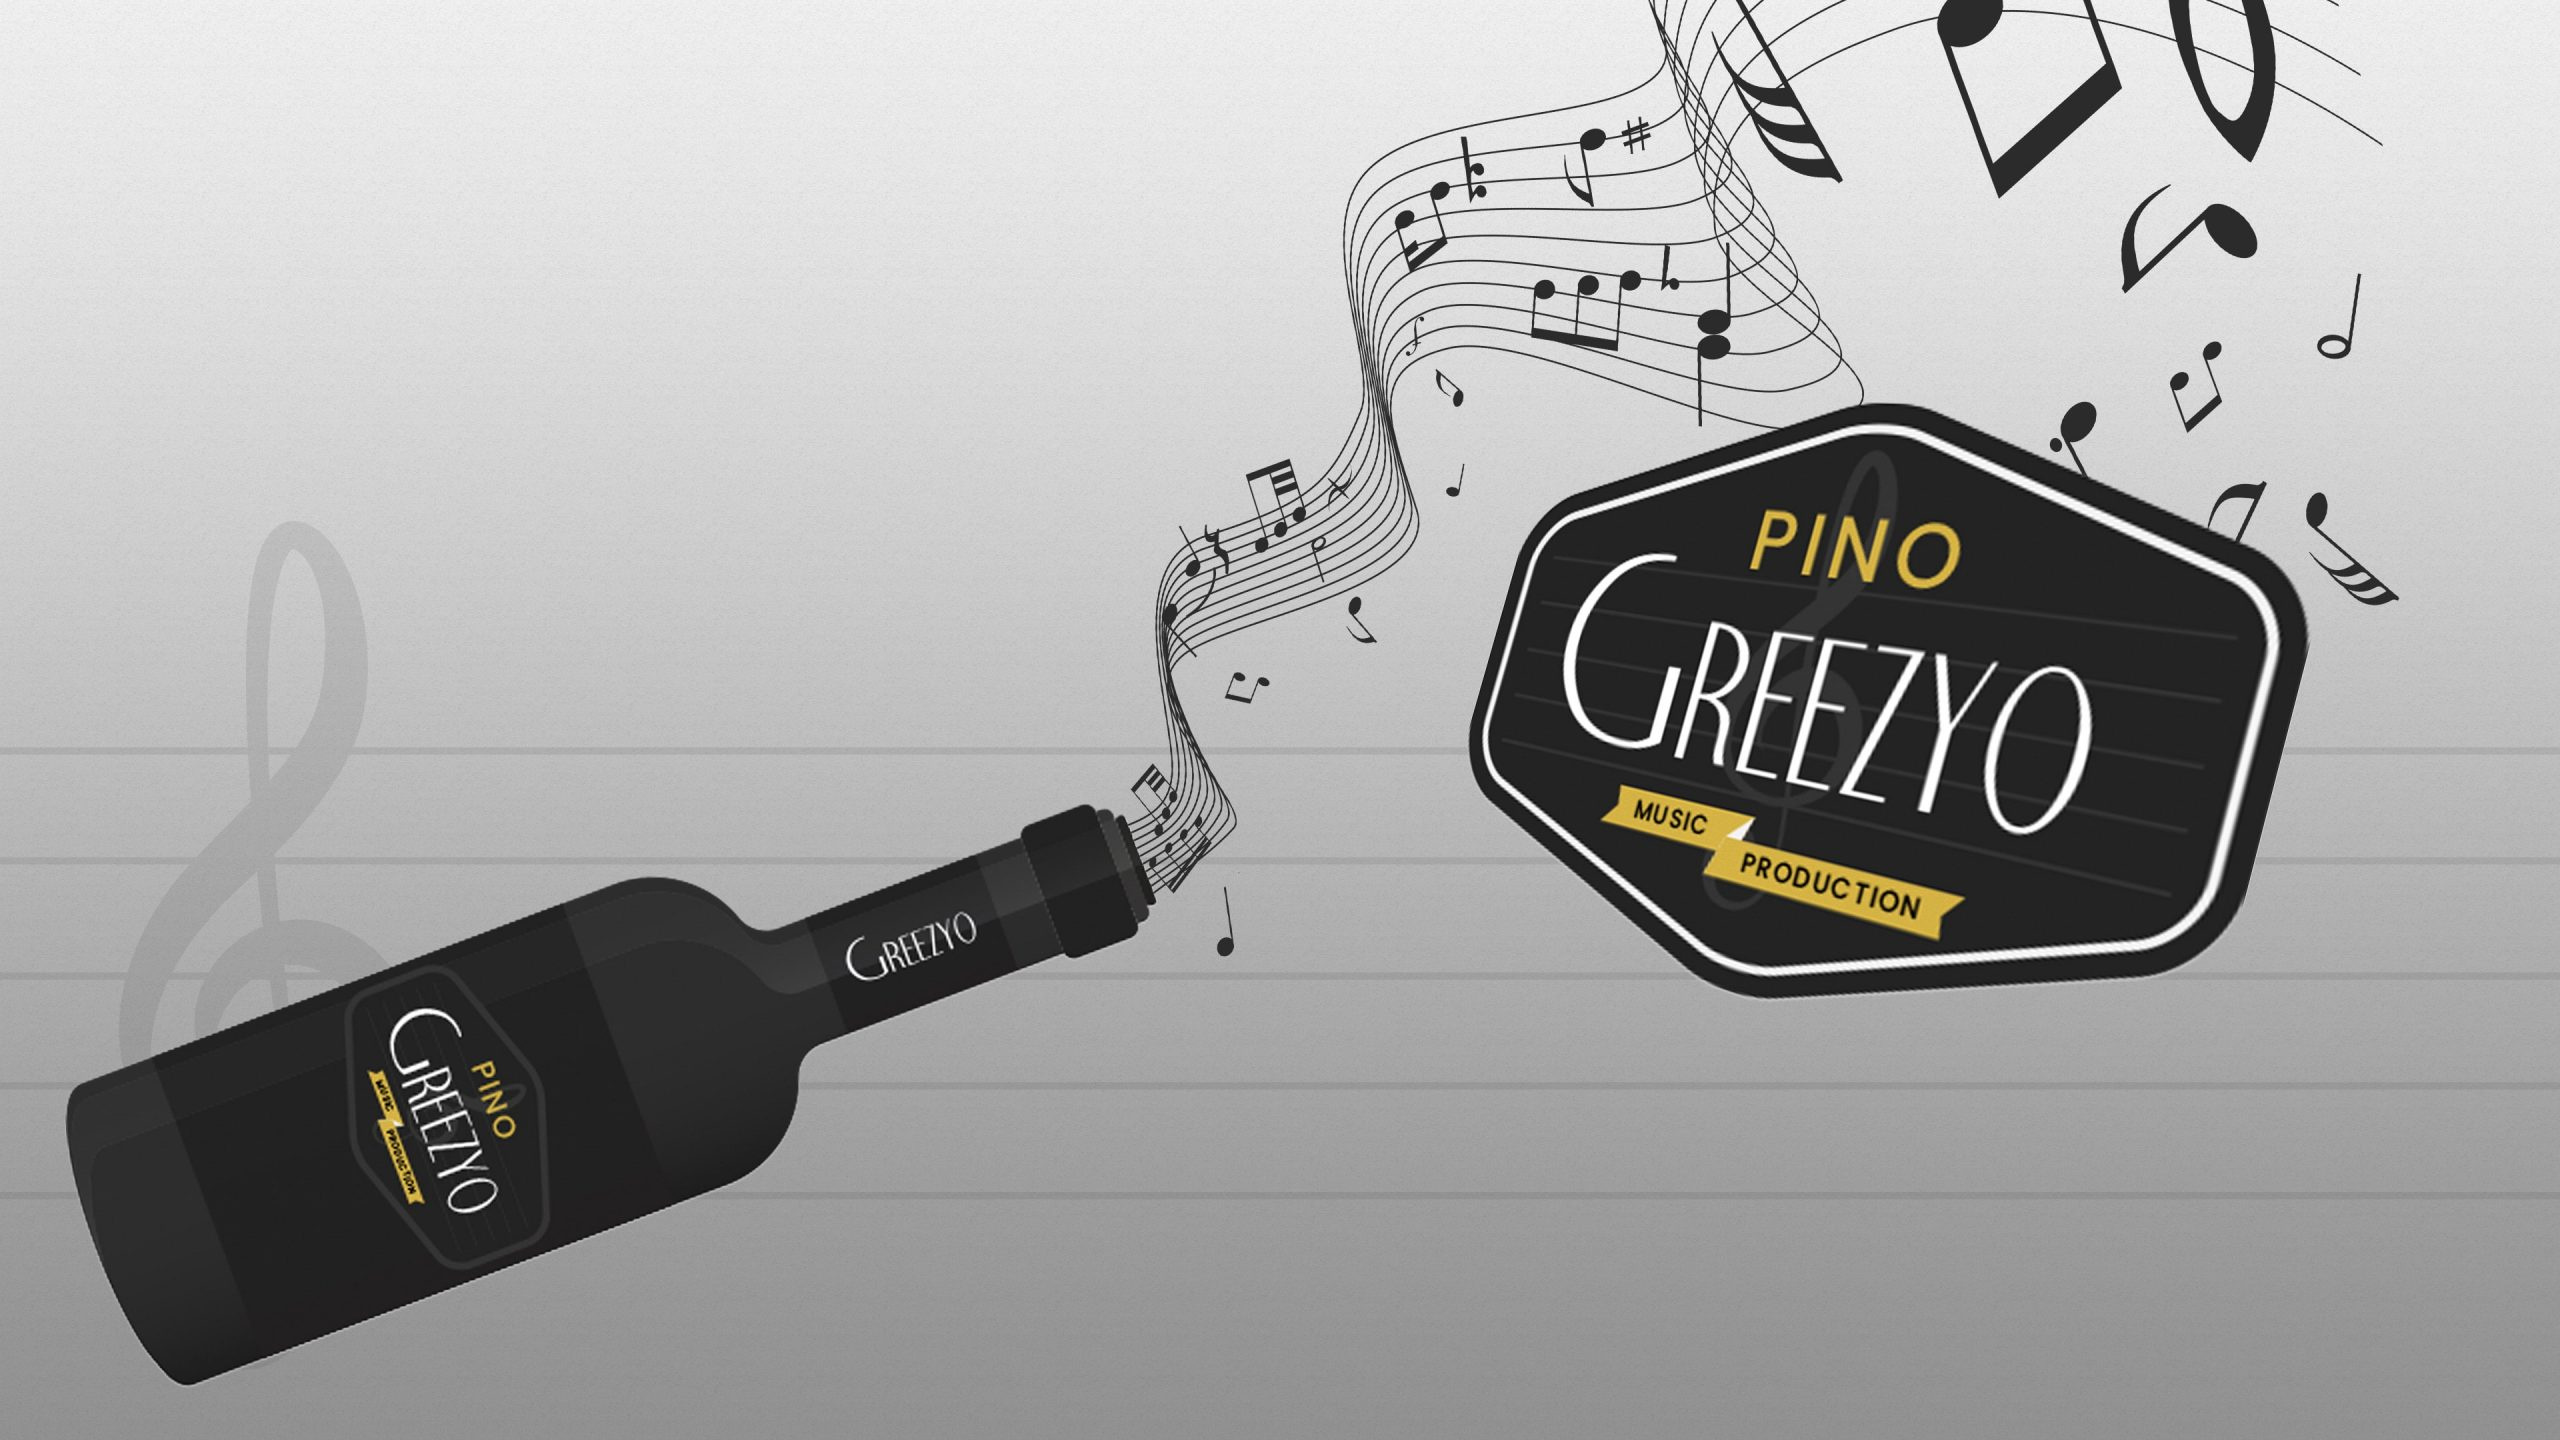 Pino Greezyo Custom Logo Design Peview